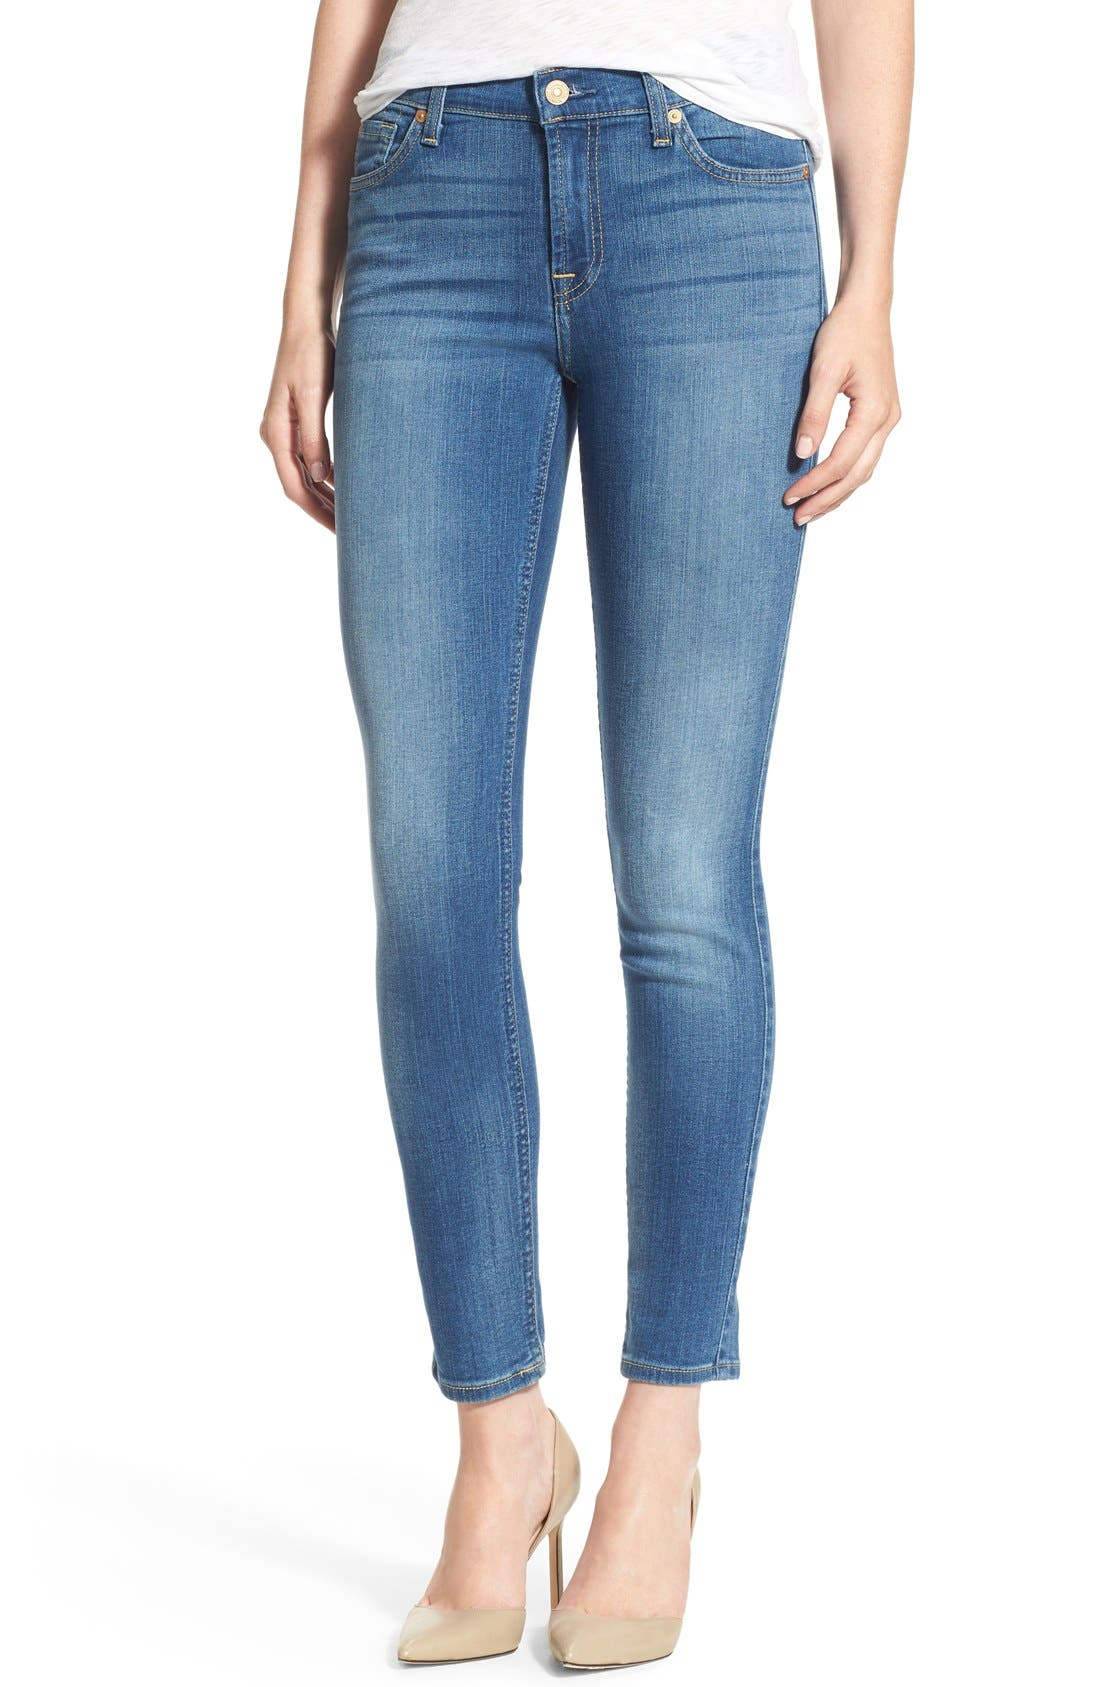 Alternate Image 1 Selected - 7 For All Mankind® Skinny Ankle Jeans (Supreme Vibrant Blue)